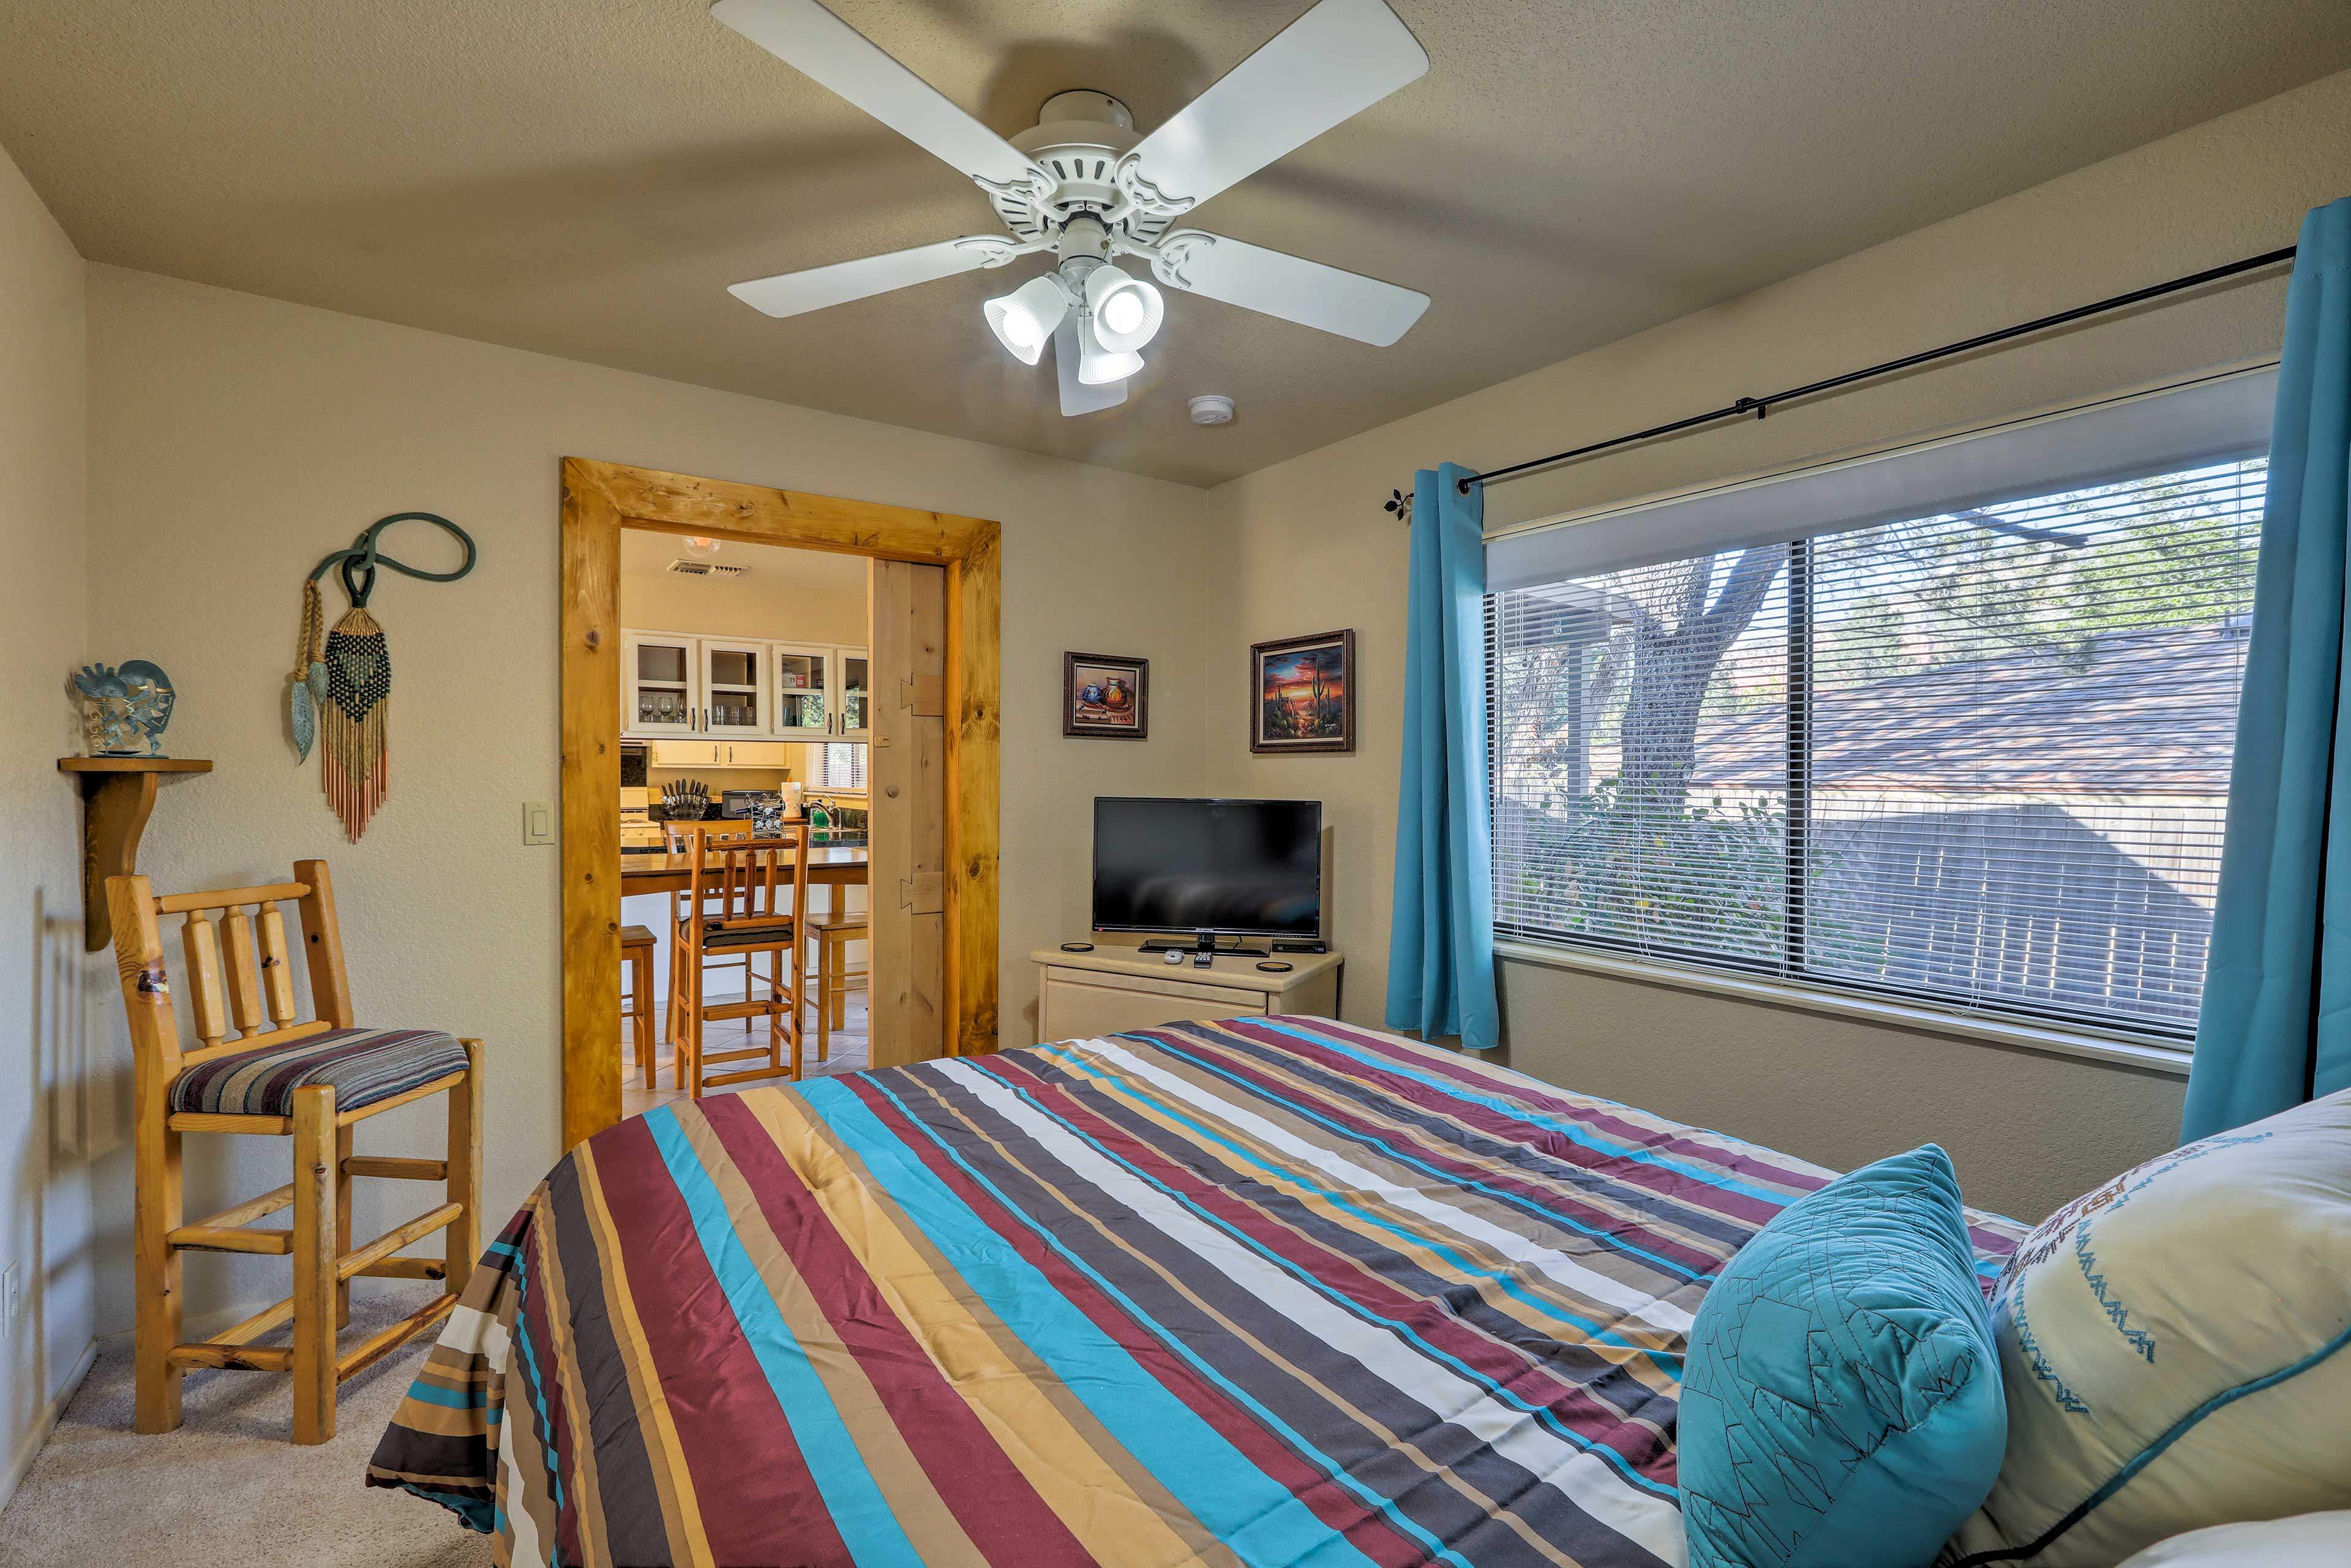 A ceiling fan enusres you stay cool and comfortable at night.